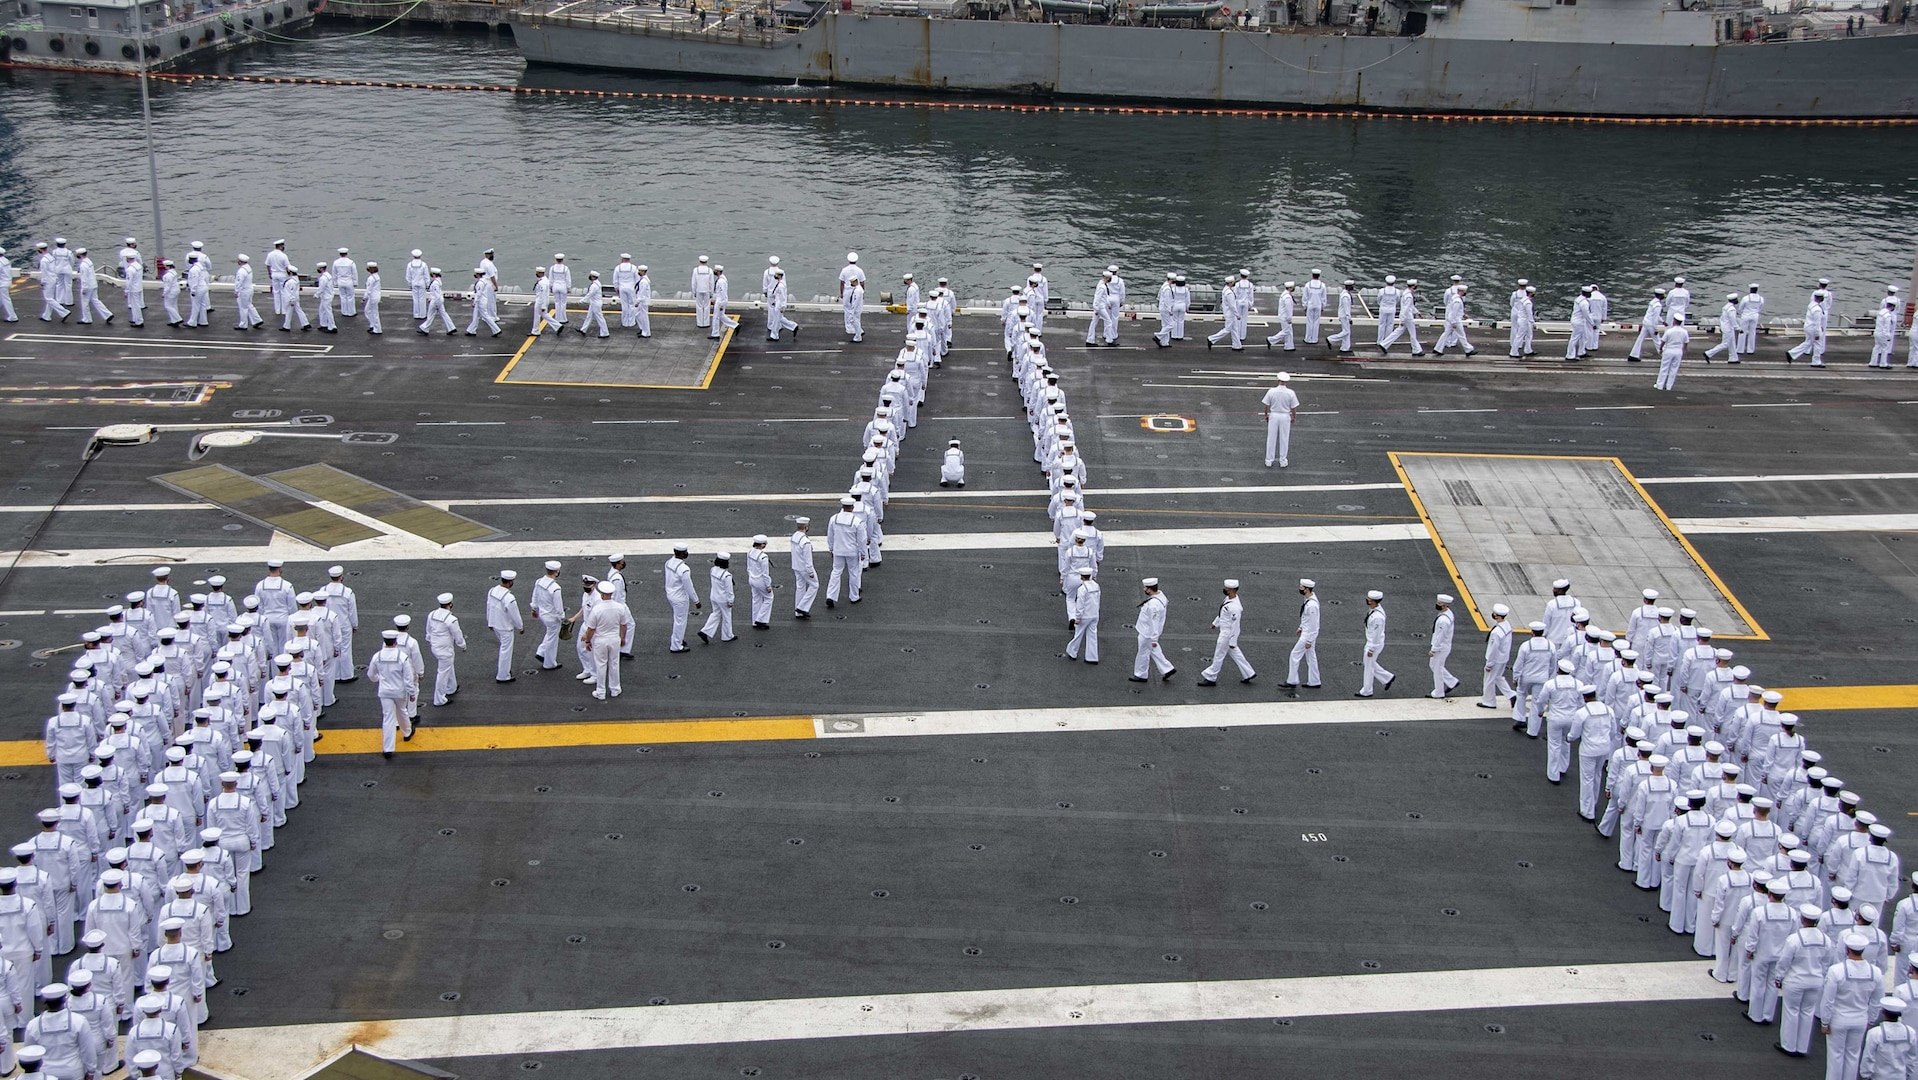 USS Ronald Reagan Carrier Strike Group departs Yokosuka to support Free and Open Indo-Pacific